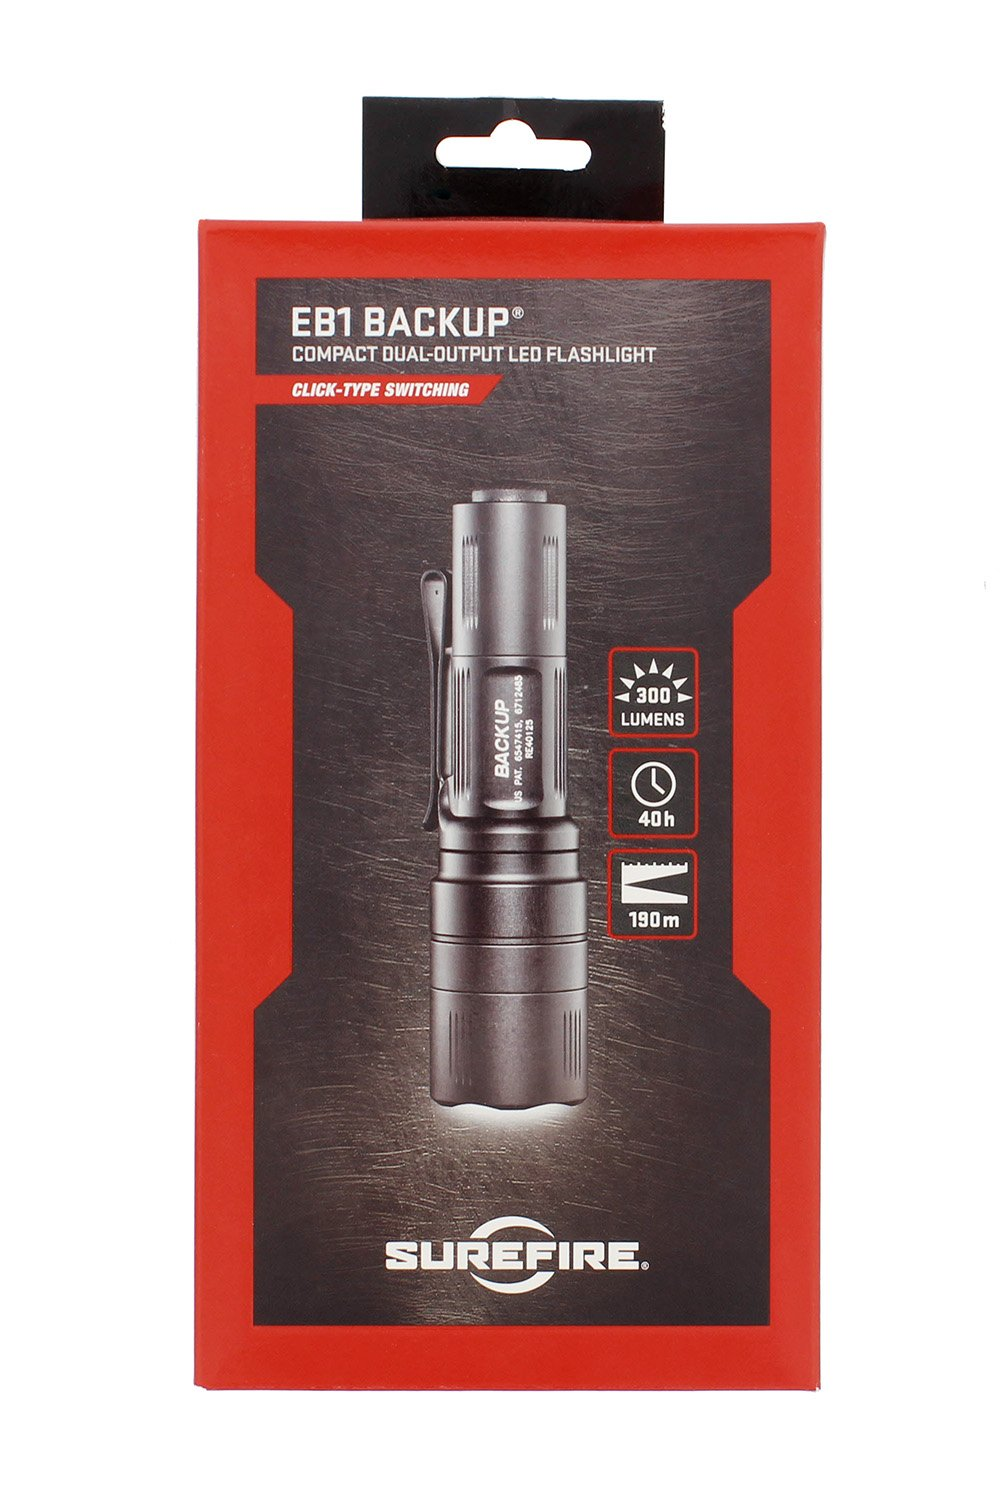 Surefire EB1C-B-BK Backup Dual-Output LED Flashlight